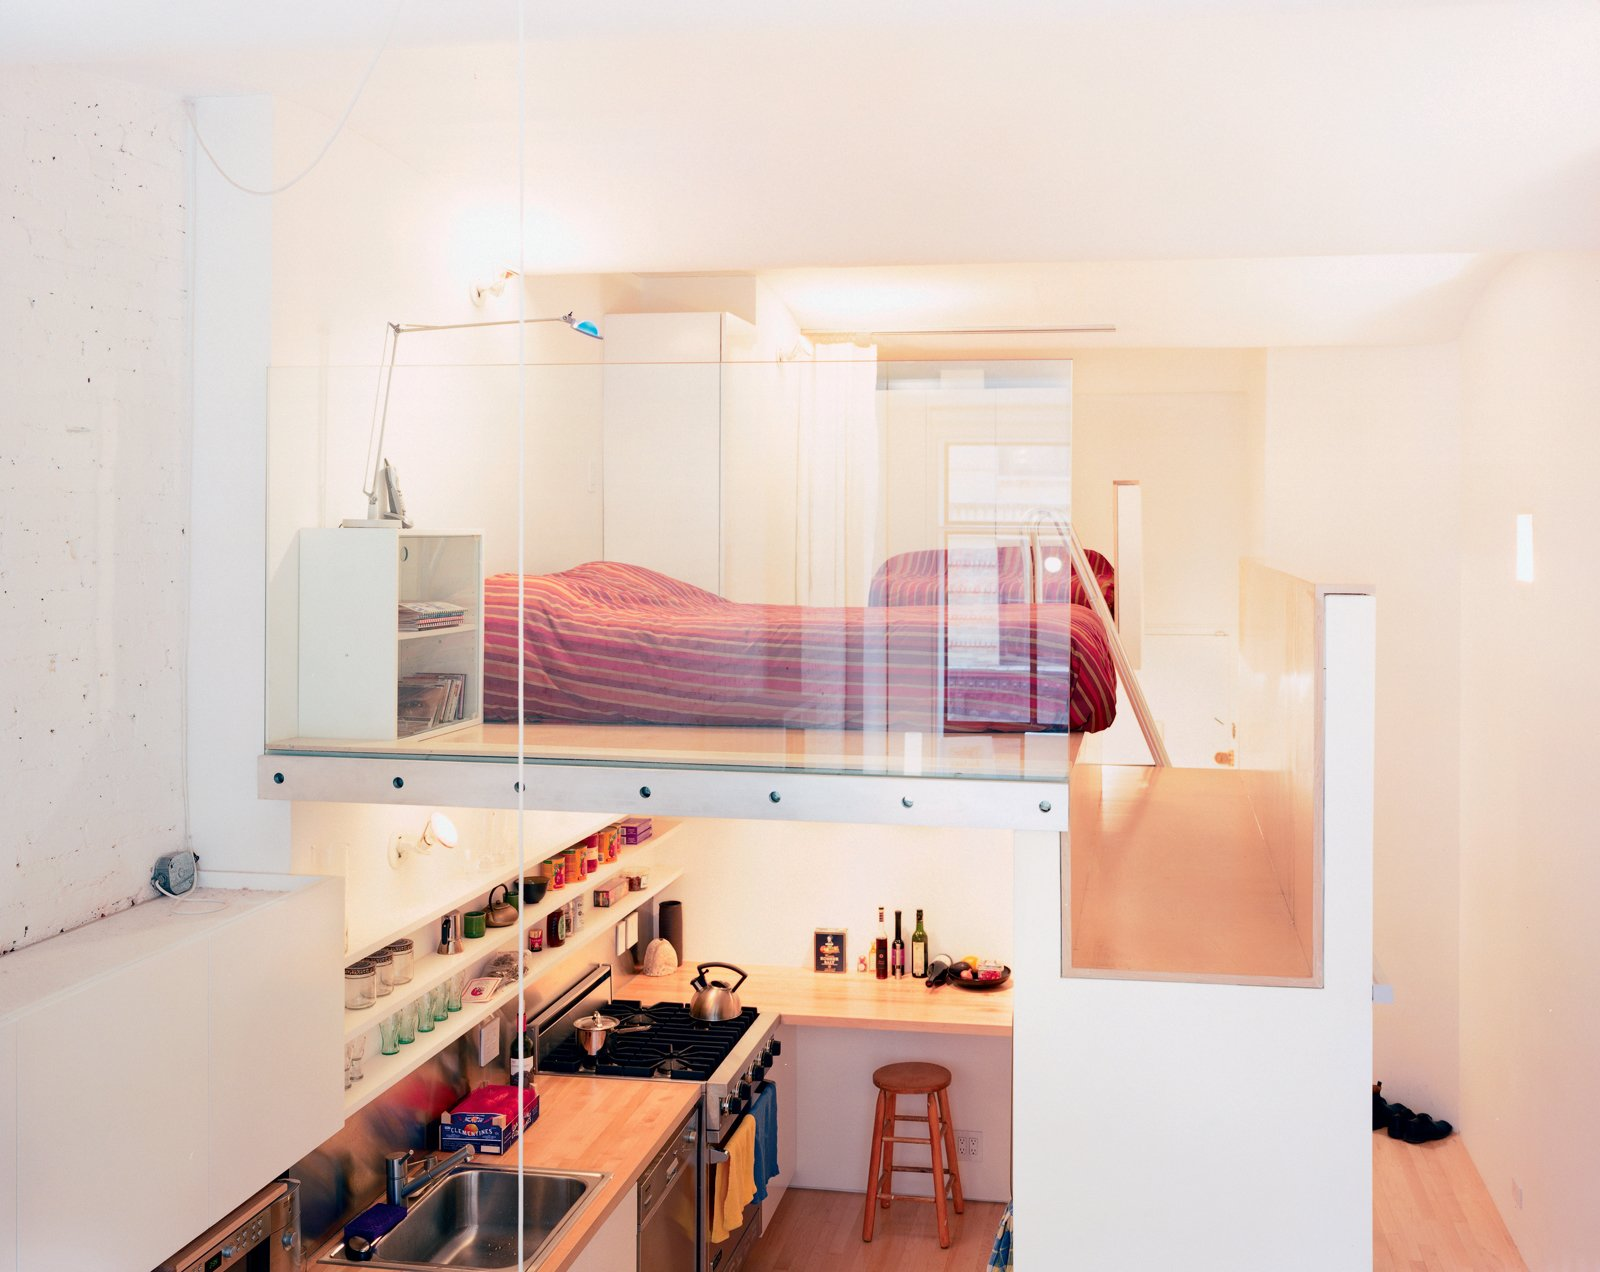 """The volume that both incorporates the single closet (accessible from the hallway) and the refrigerator (which opens into the kitchen) and serves as the bedroom floor is, says Kyu Sung Woo, """"where everything comes together.""""  Photo 2 of 7 in Big City, Little Loft"""